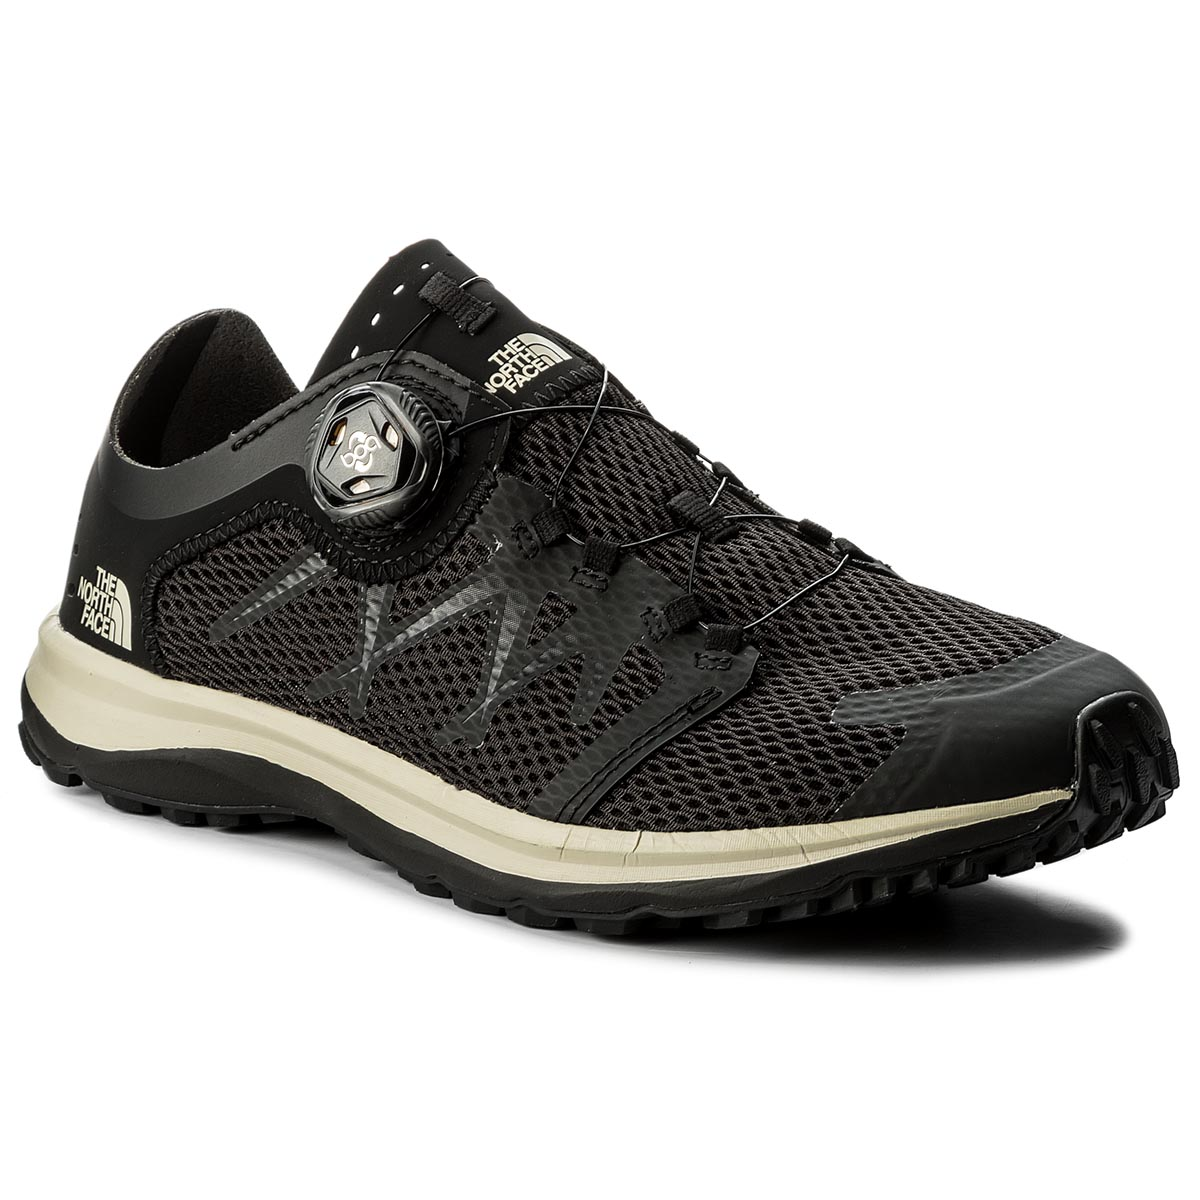 Trekkings THE NORTH FACE - Litewave Flow Boa T92VV1LQ6 Tnf Black/Vintage White